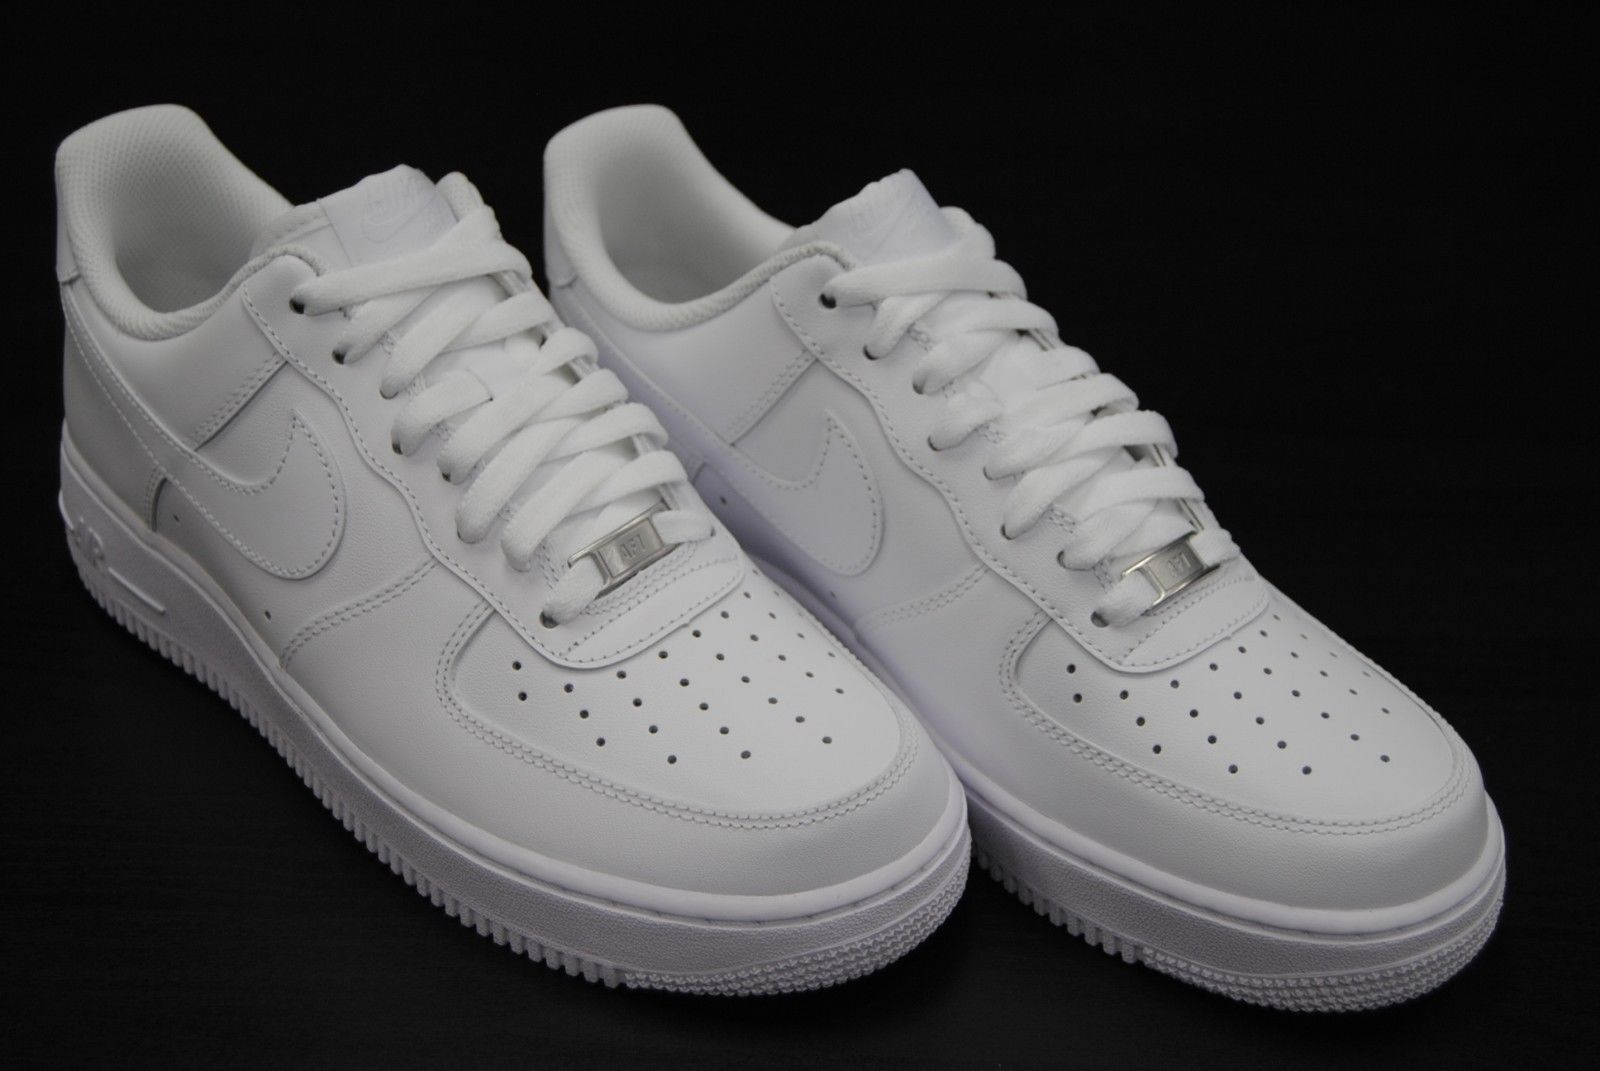 [315122 111] NEW MEN'S NIKE AIR FORCE 1 LOW '07 ALL WHITE /